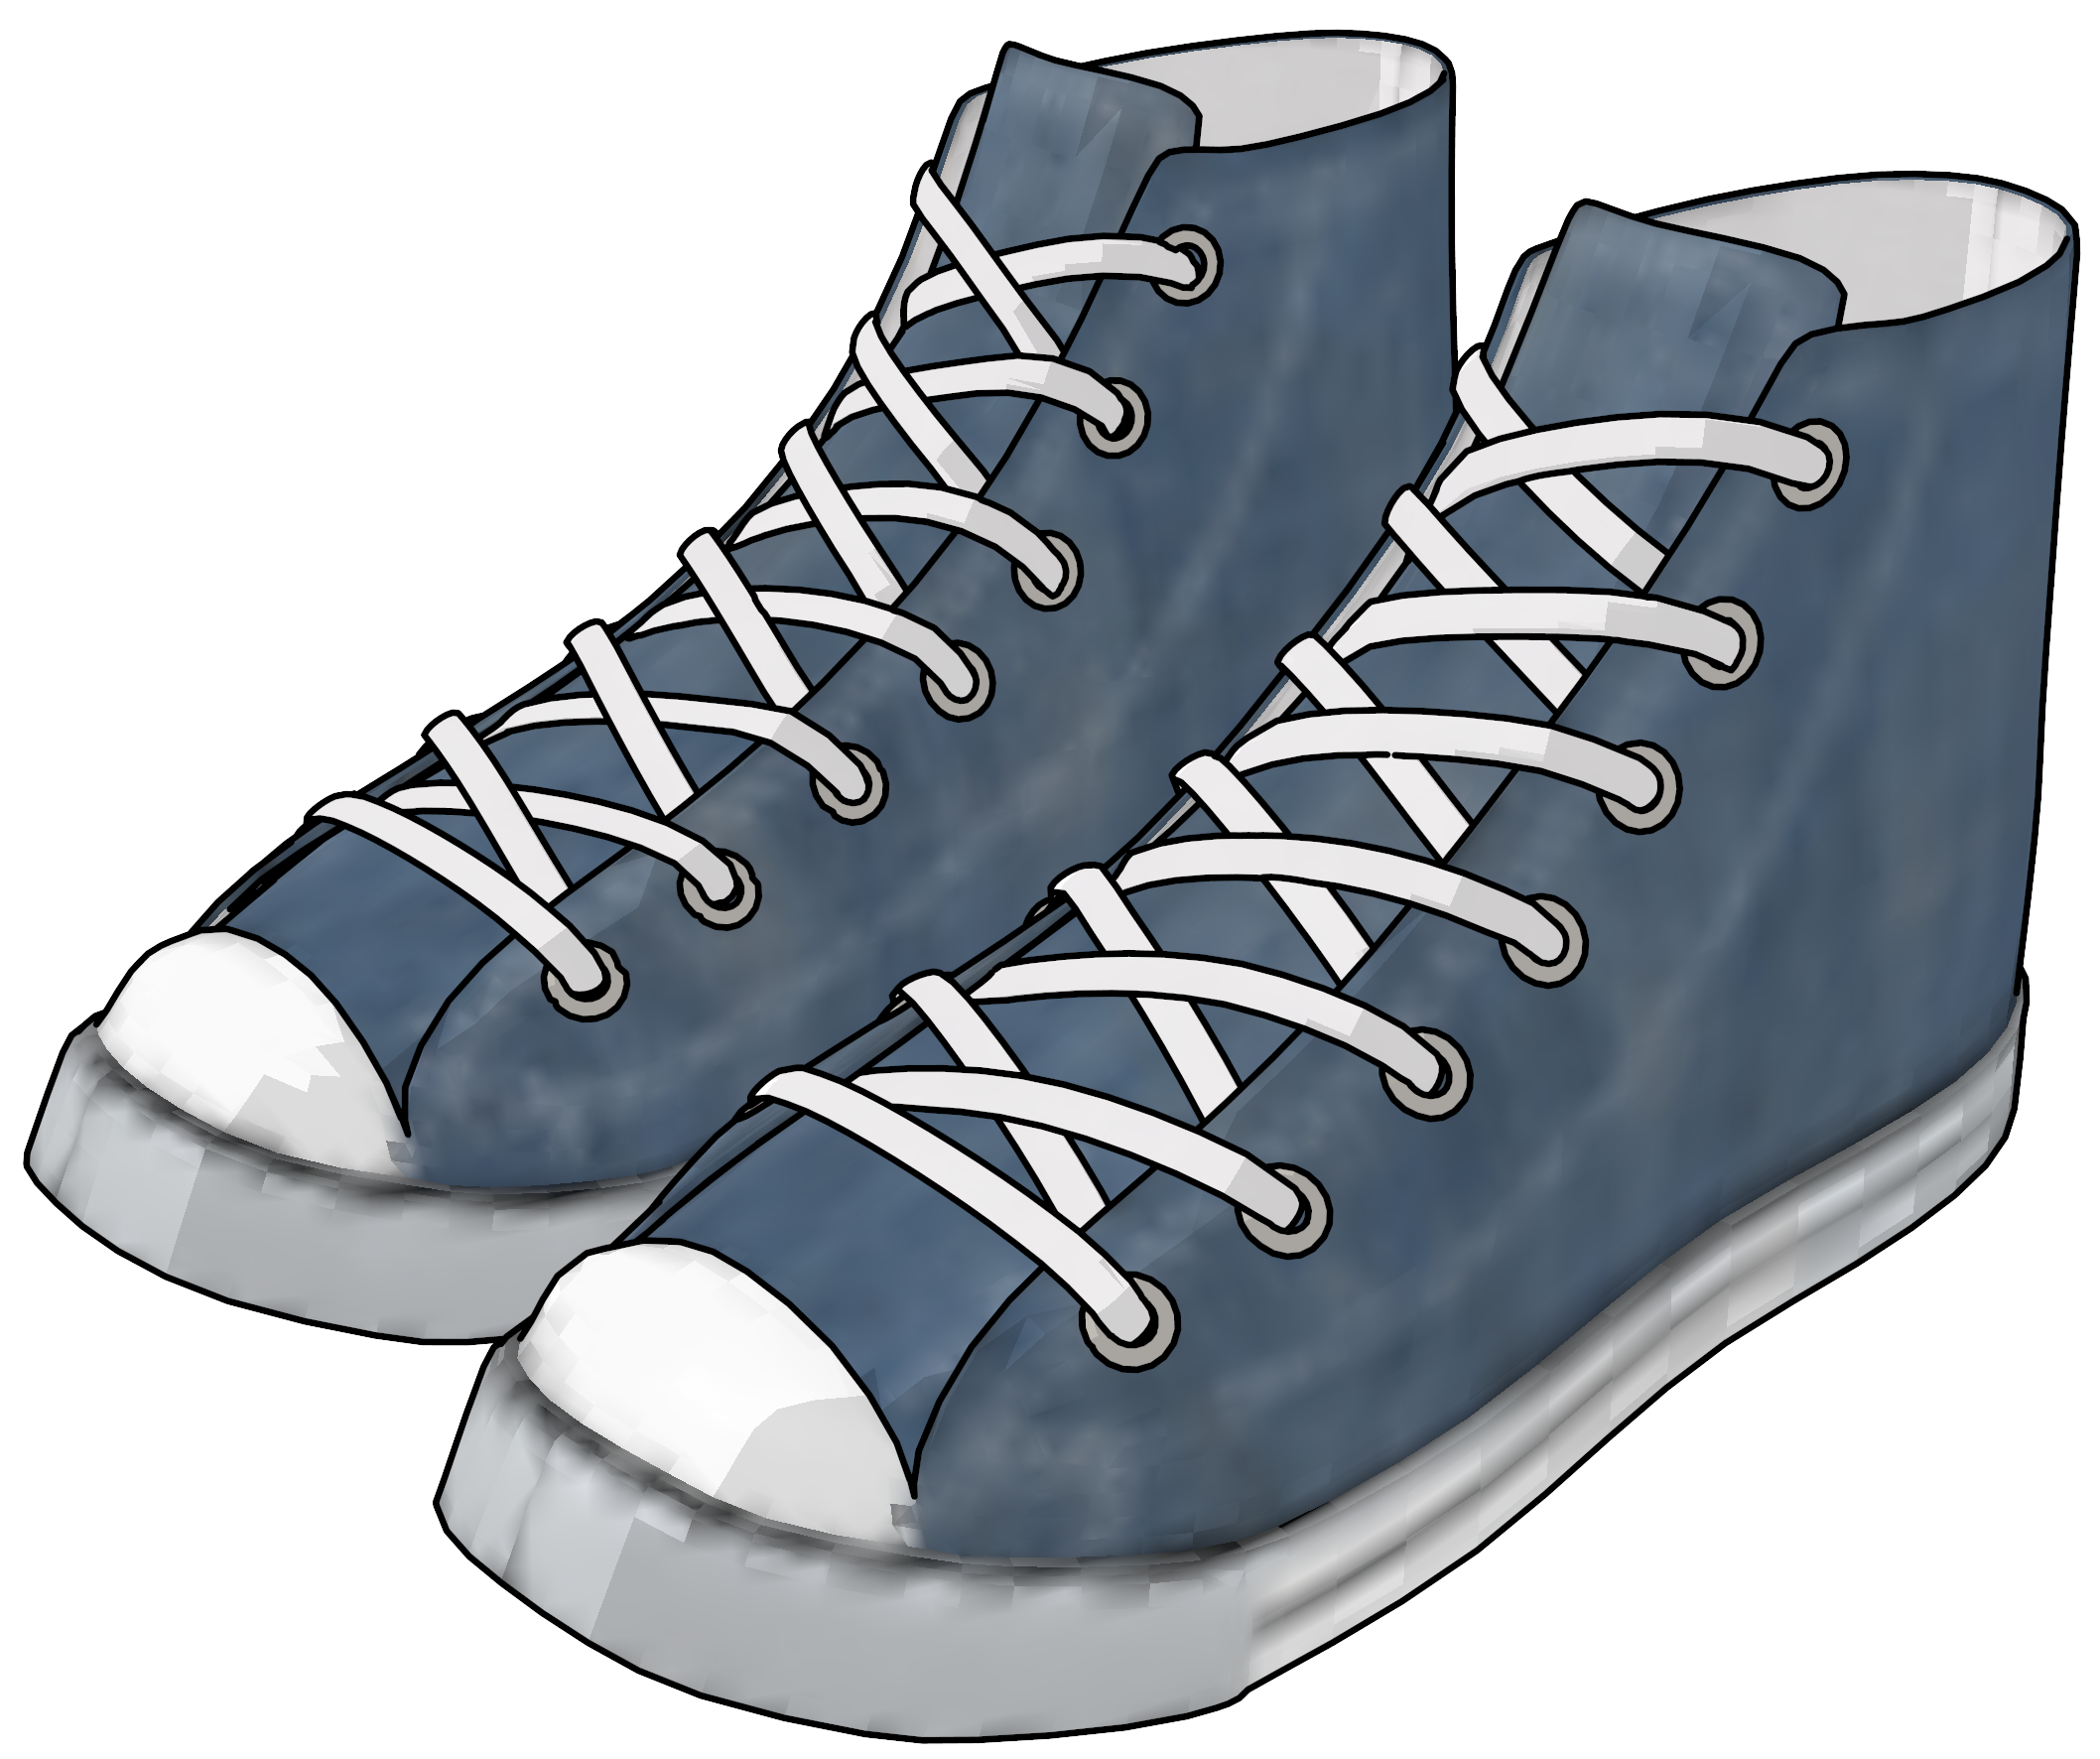 Converse clipart high top converse. Sneakers shoes png clipartly